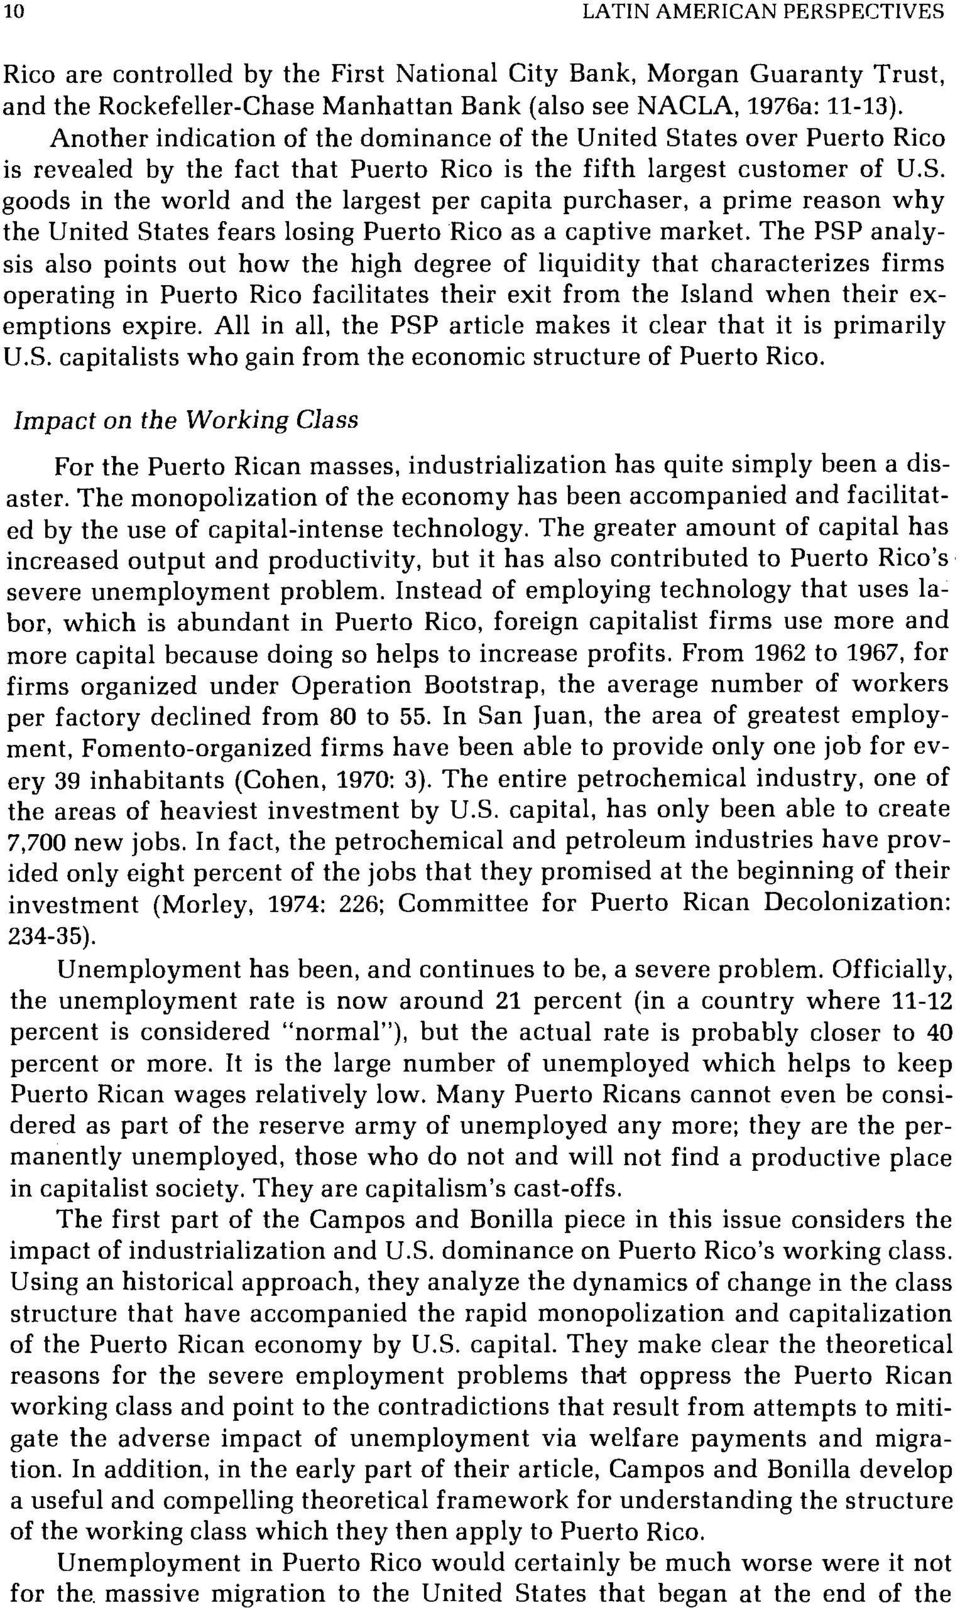 The PSP analysis also points out how the high degree of liquidity that characterizes firms operating in Puerto Rico facilitates their exit from the Island when their exemptions expire.